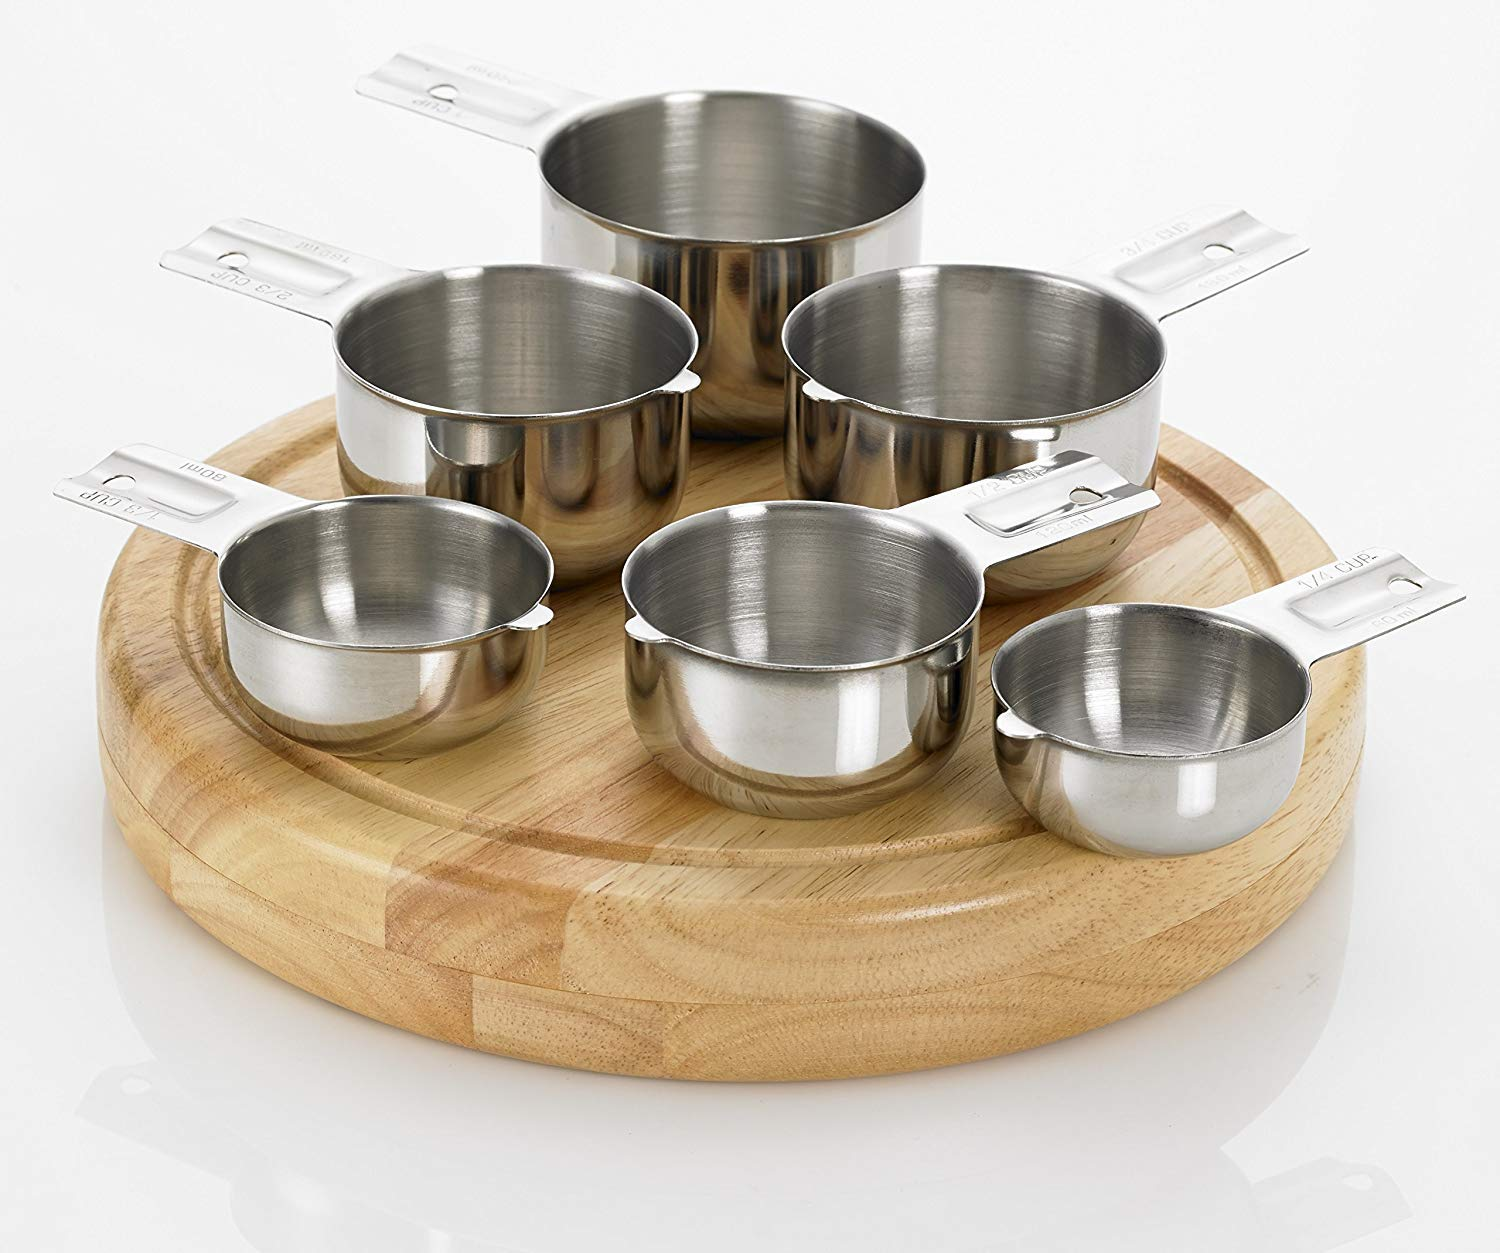 Bellemain Stainless Steel Measuring Cup Set, 6 Piece by Bellemain